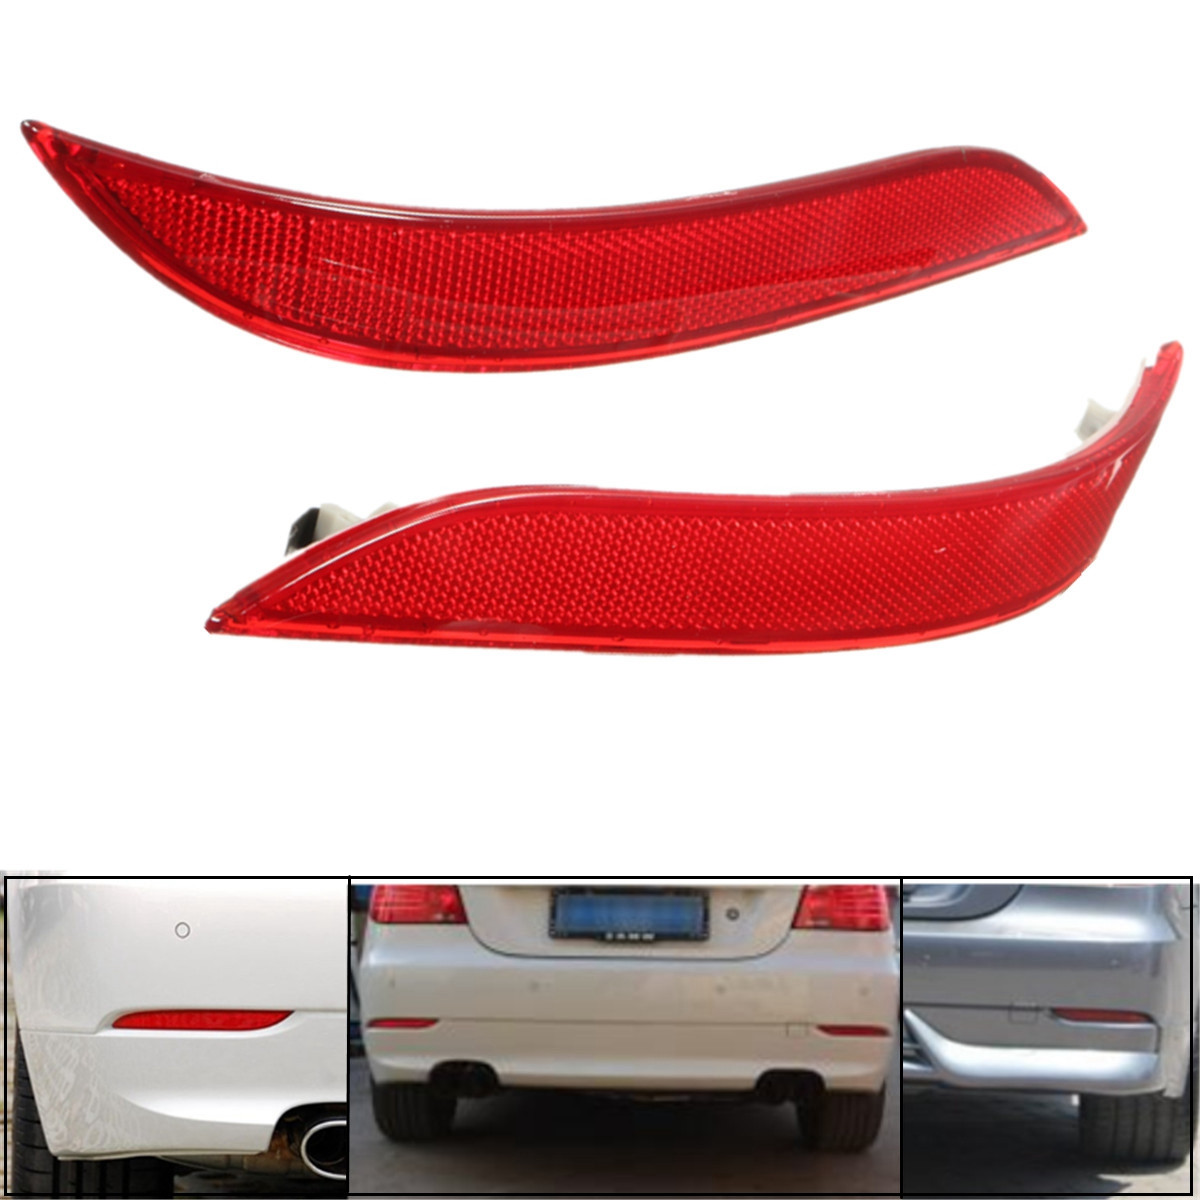 Rear Bumper Reflector for BMW 5 Series E60 2003-2007 63146915039 63146915040 1 Pair Left /& Right Car Rear Bumper Reflector